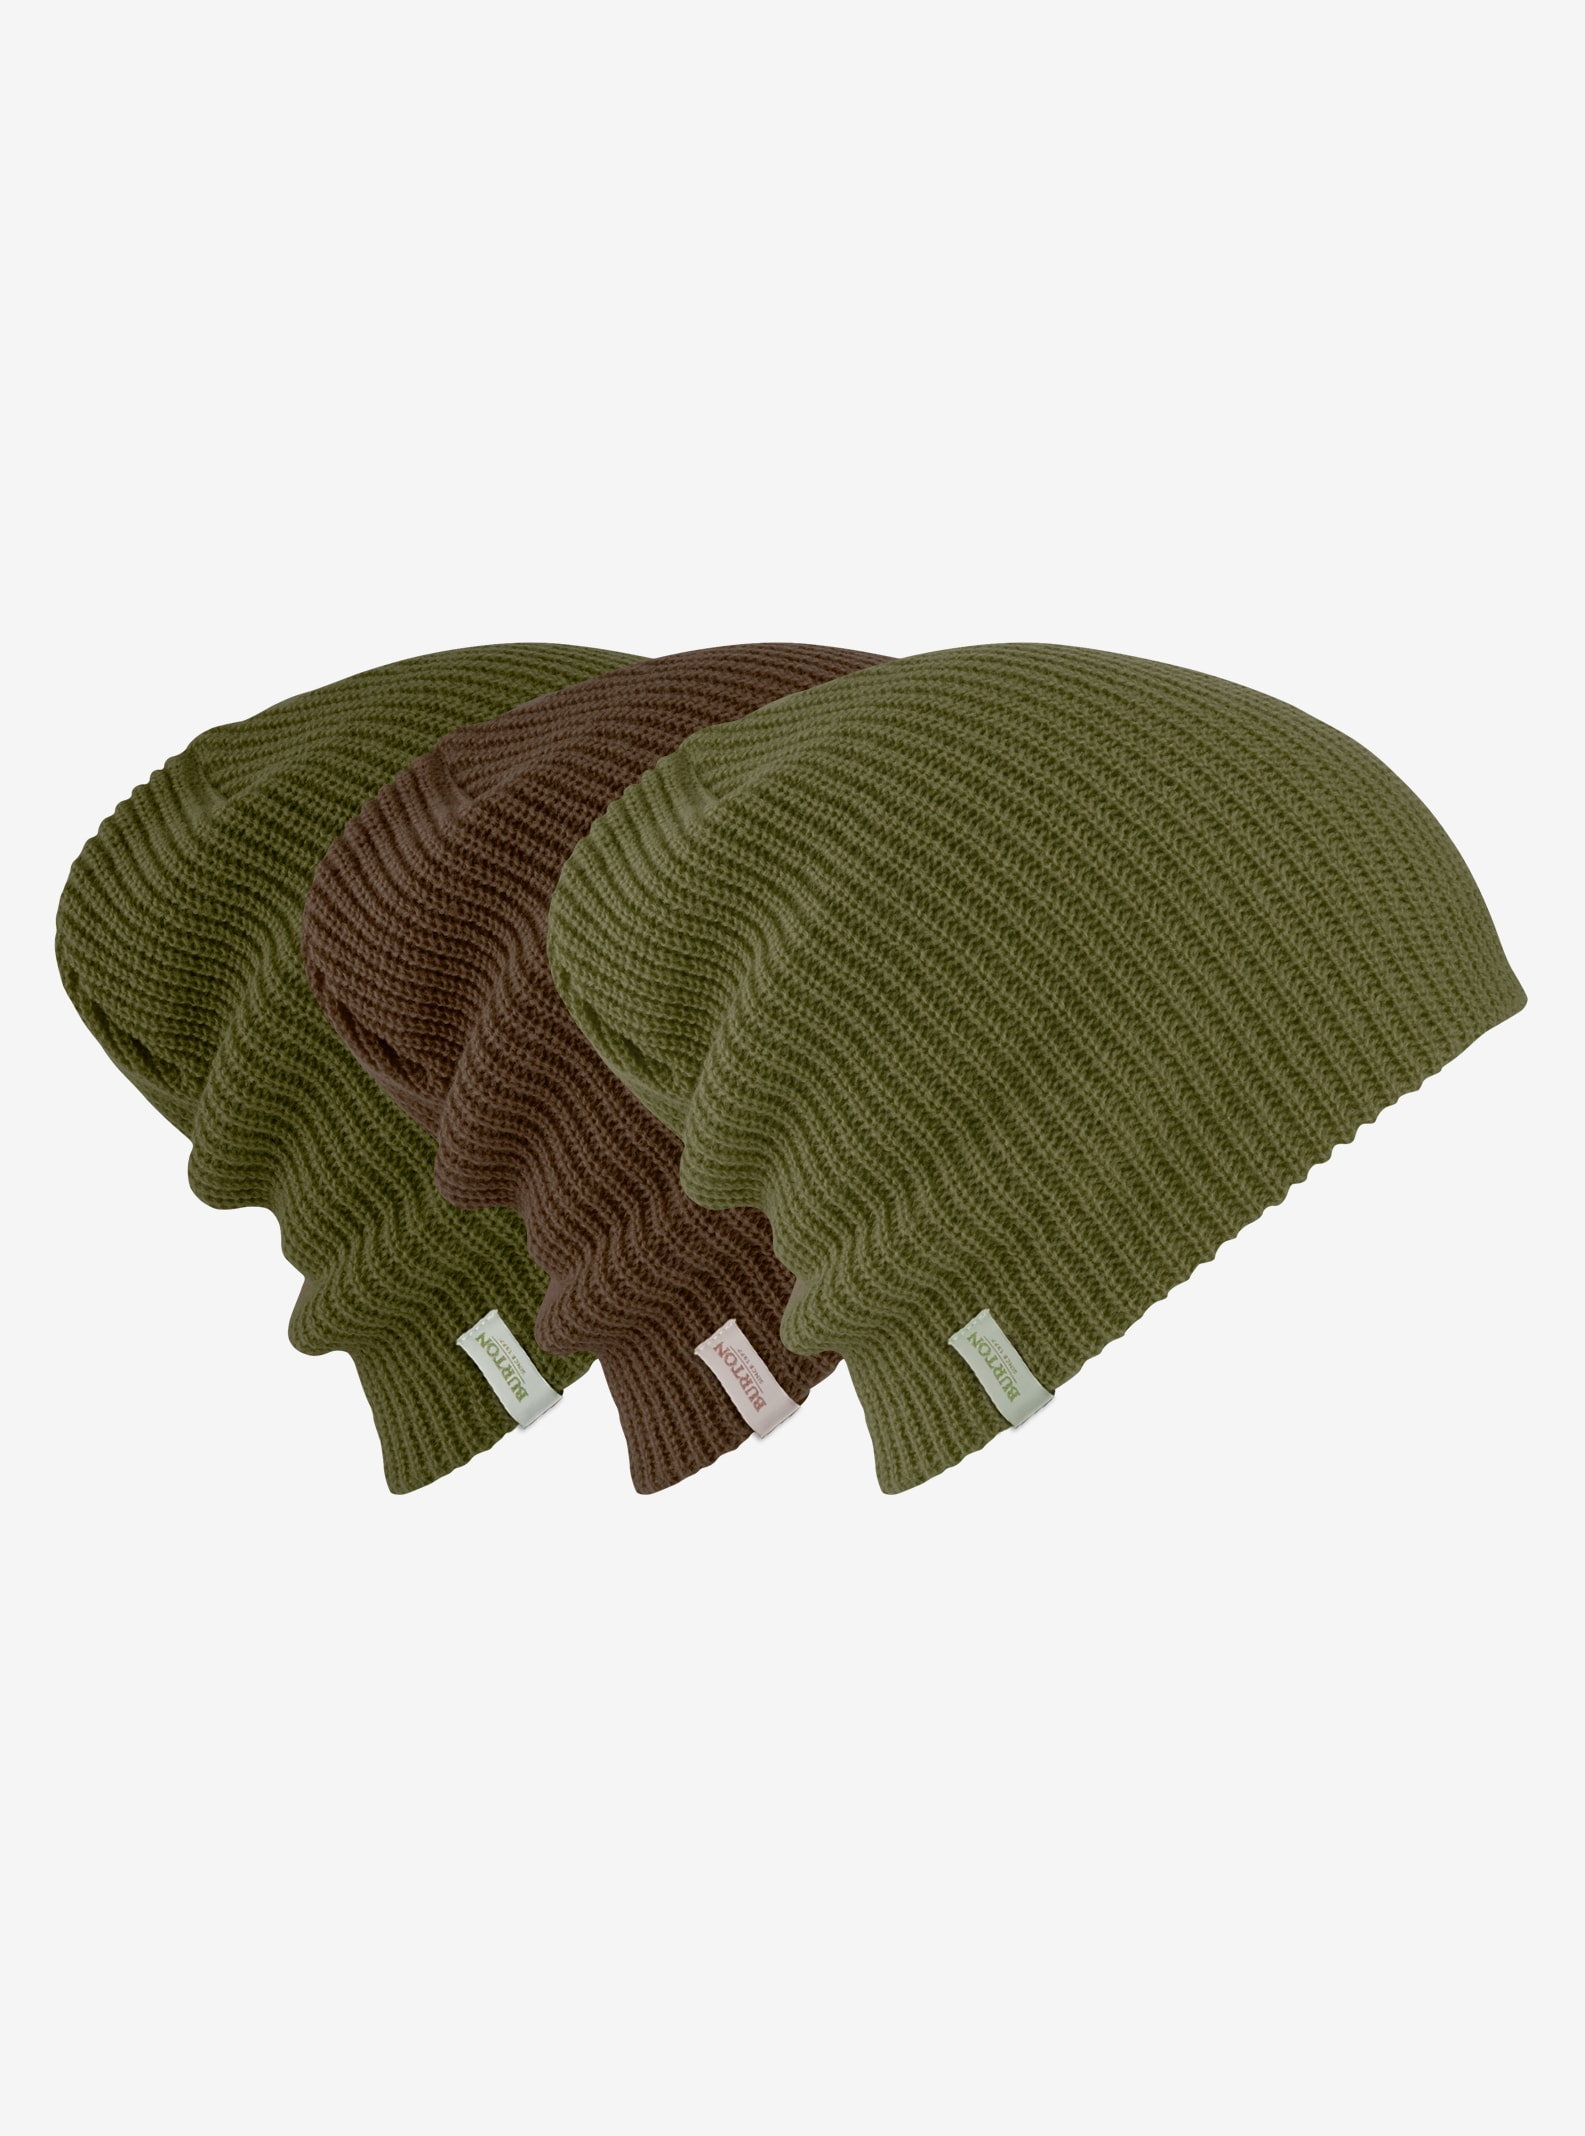 Burton DND Beanie 3-Pack shown in Chestnut / Forest Night / Olive Branch